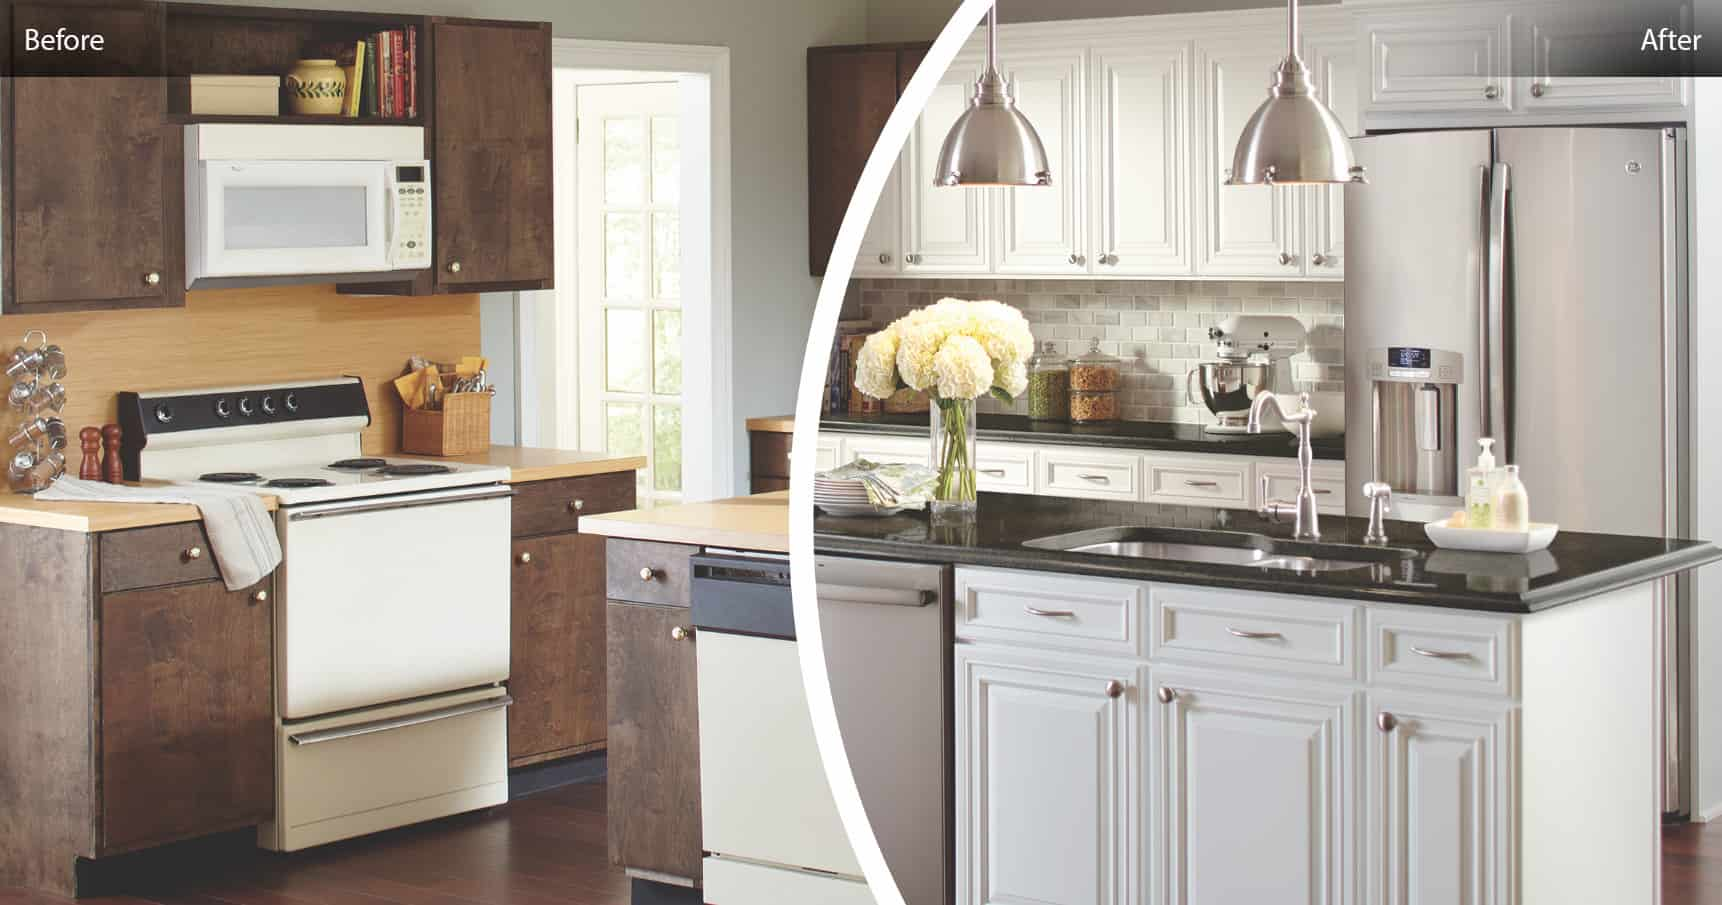 Refacing or Refinishing Kitchen Cabinets | HomeAdvisor